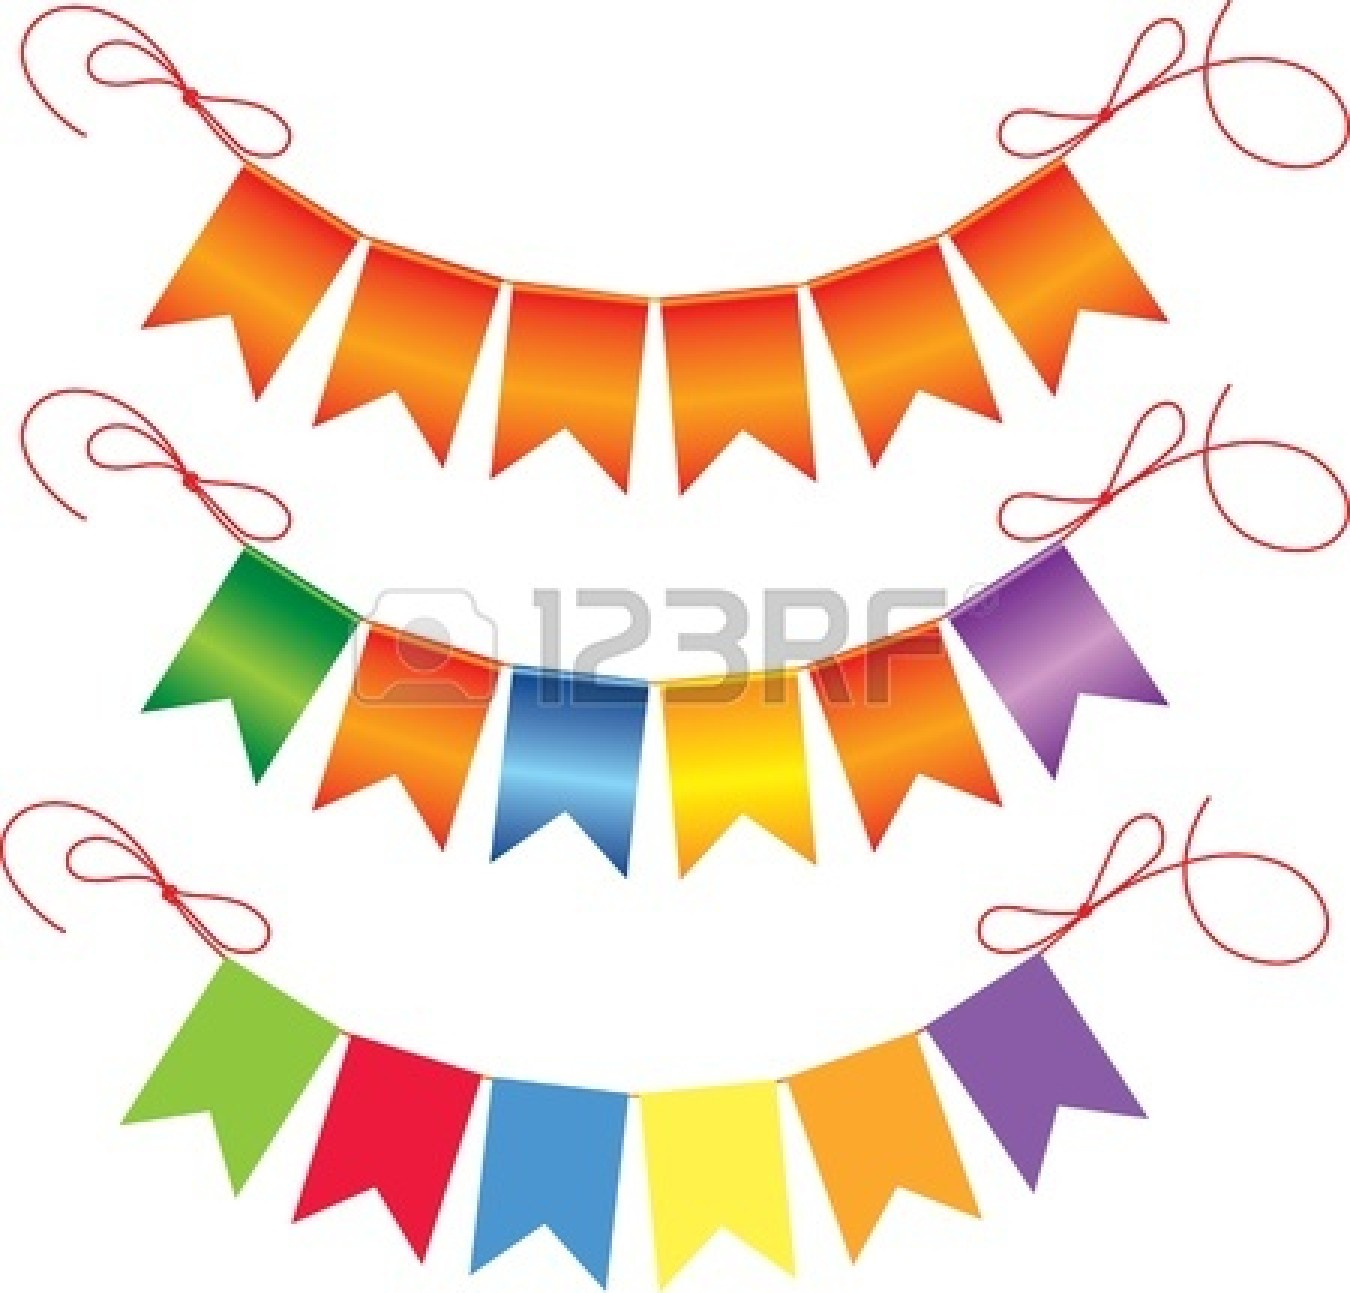 Pendent clipart weekend banner Images Clipart Triangle Vector Free